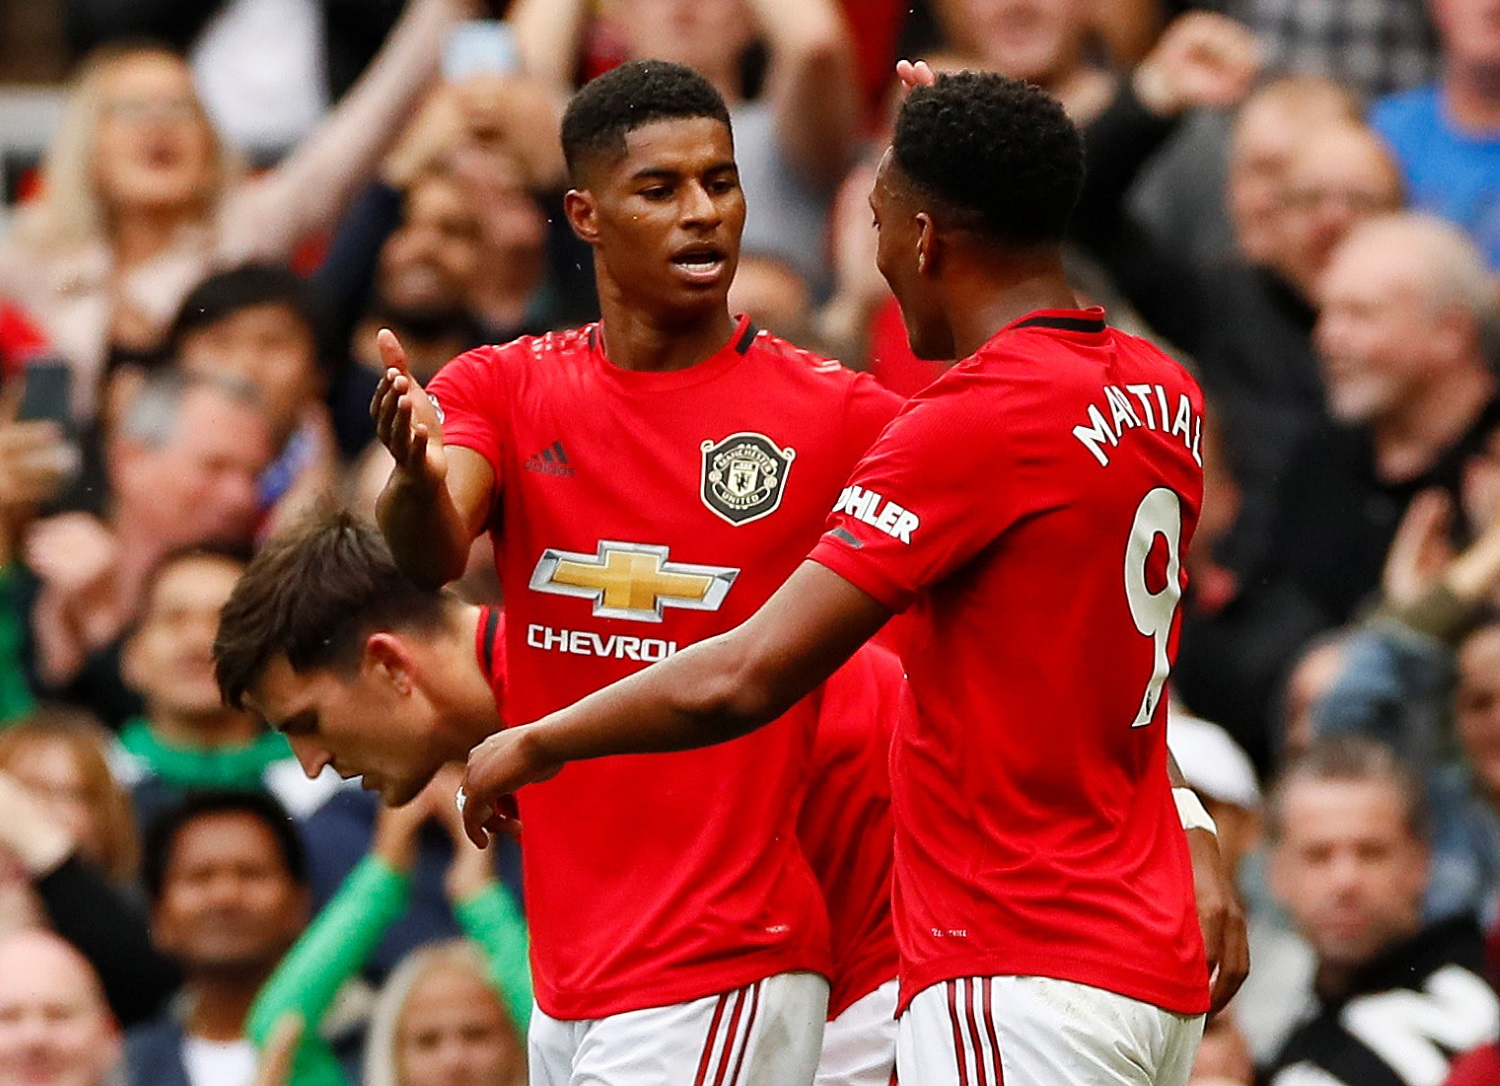 Rashford Plays Down Owen's 'Killer Instinct' Claim